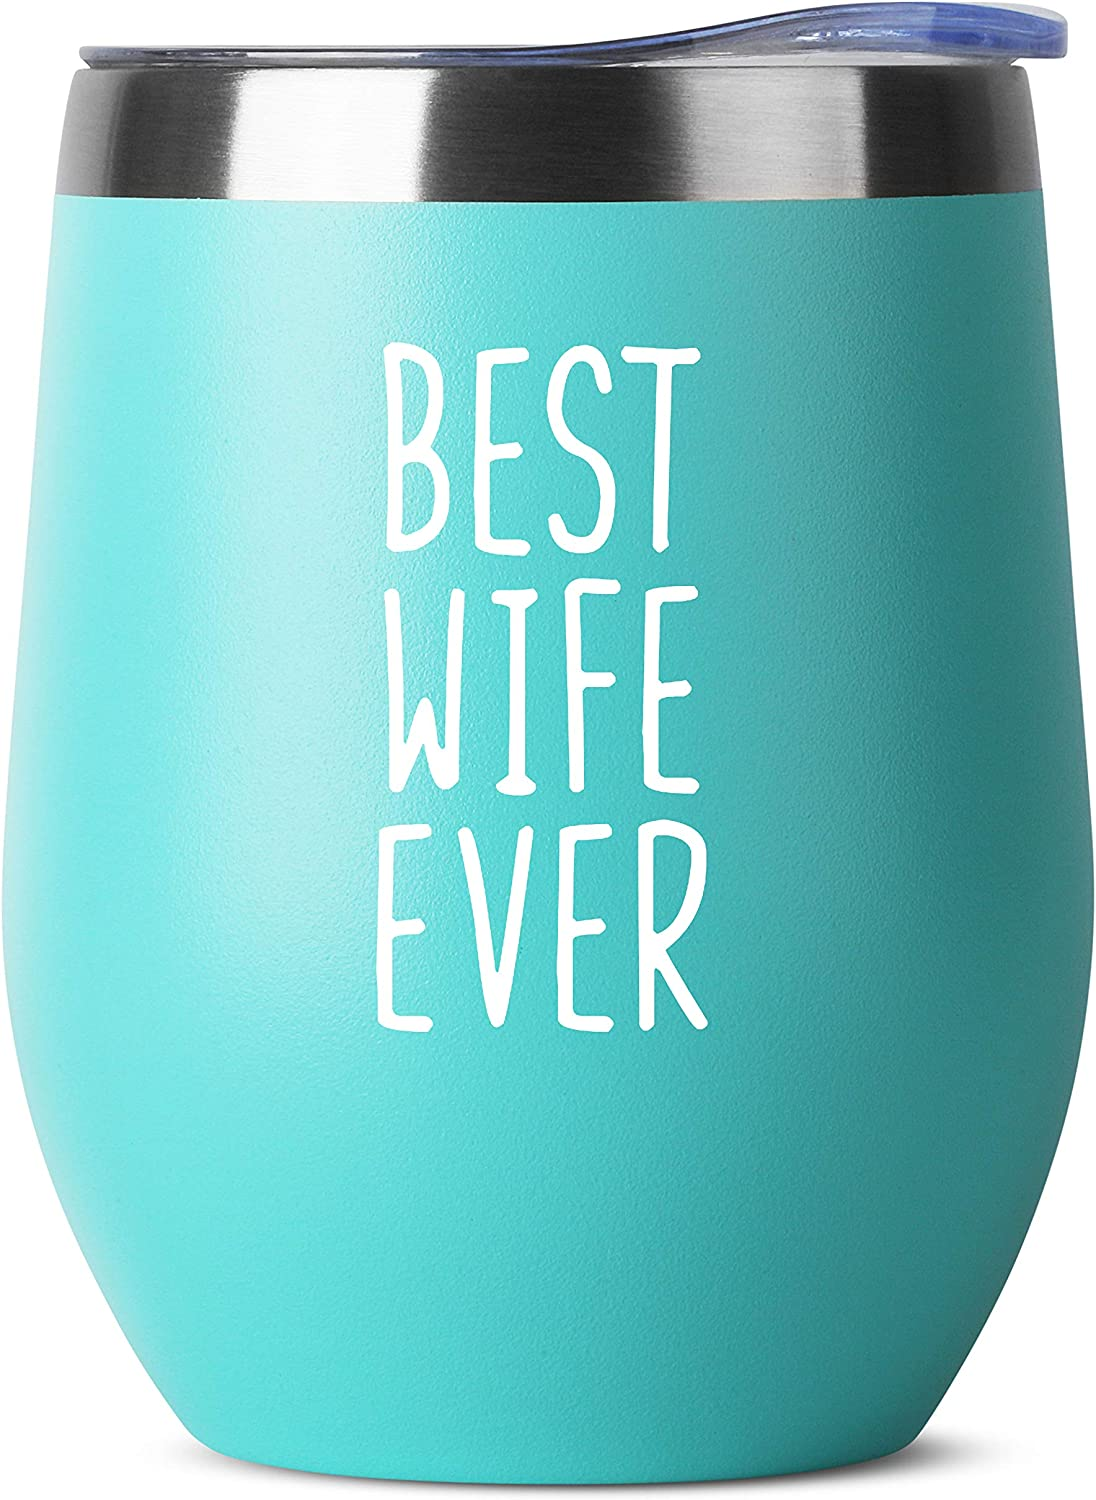 Best Wife Ever - Birthday Gifts for Women or Men - Stainless Steel Tumbler - 12 oz Mint Tumblers with Lid - Funny Anniversary Gift Ideas for Him, Her, Husband or Wife. Insulated Cups